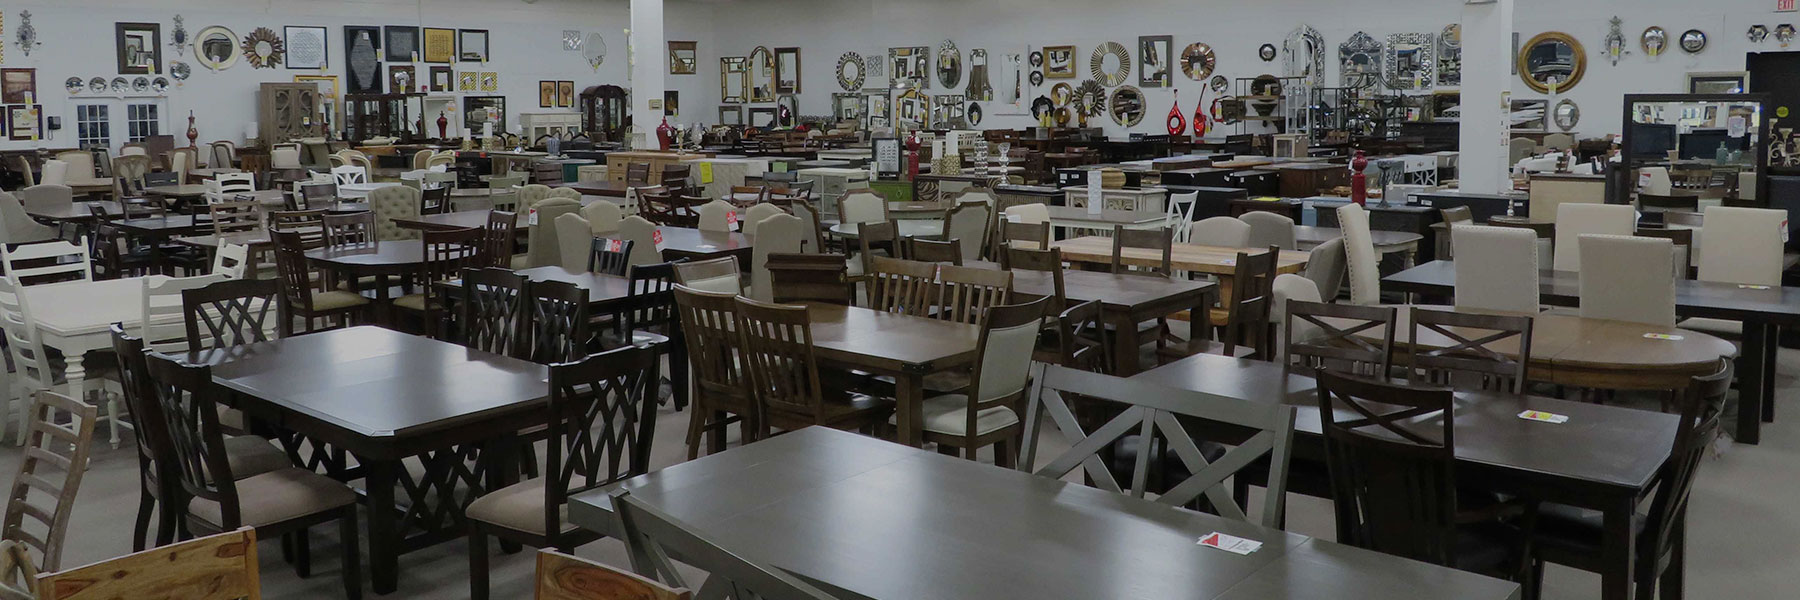 A Mart Furniture Store Raleigh Furniture Store For Bedroom Living Dining Room Furniture